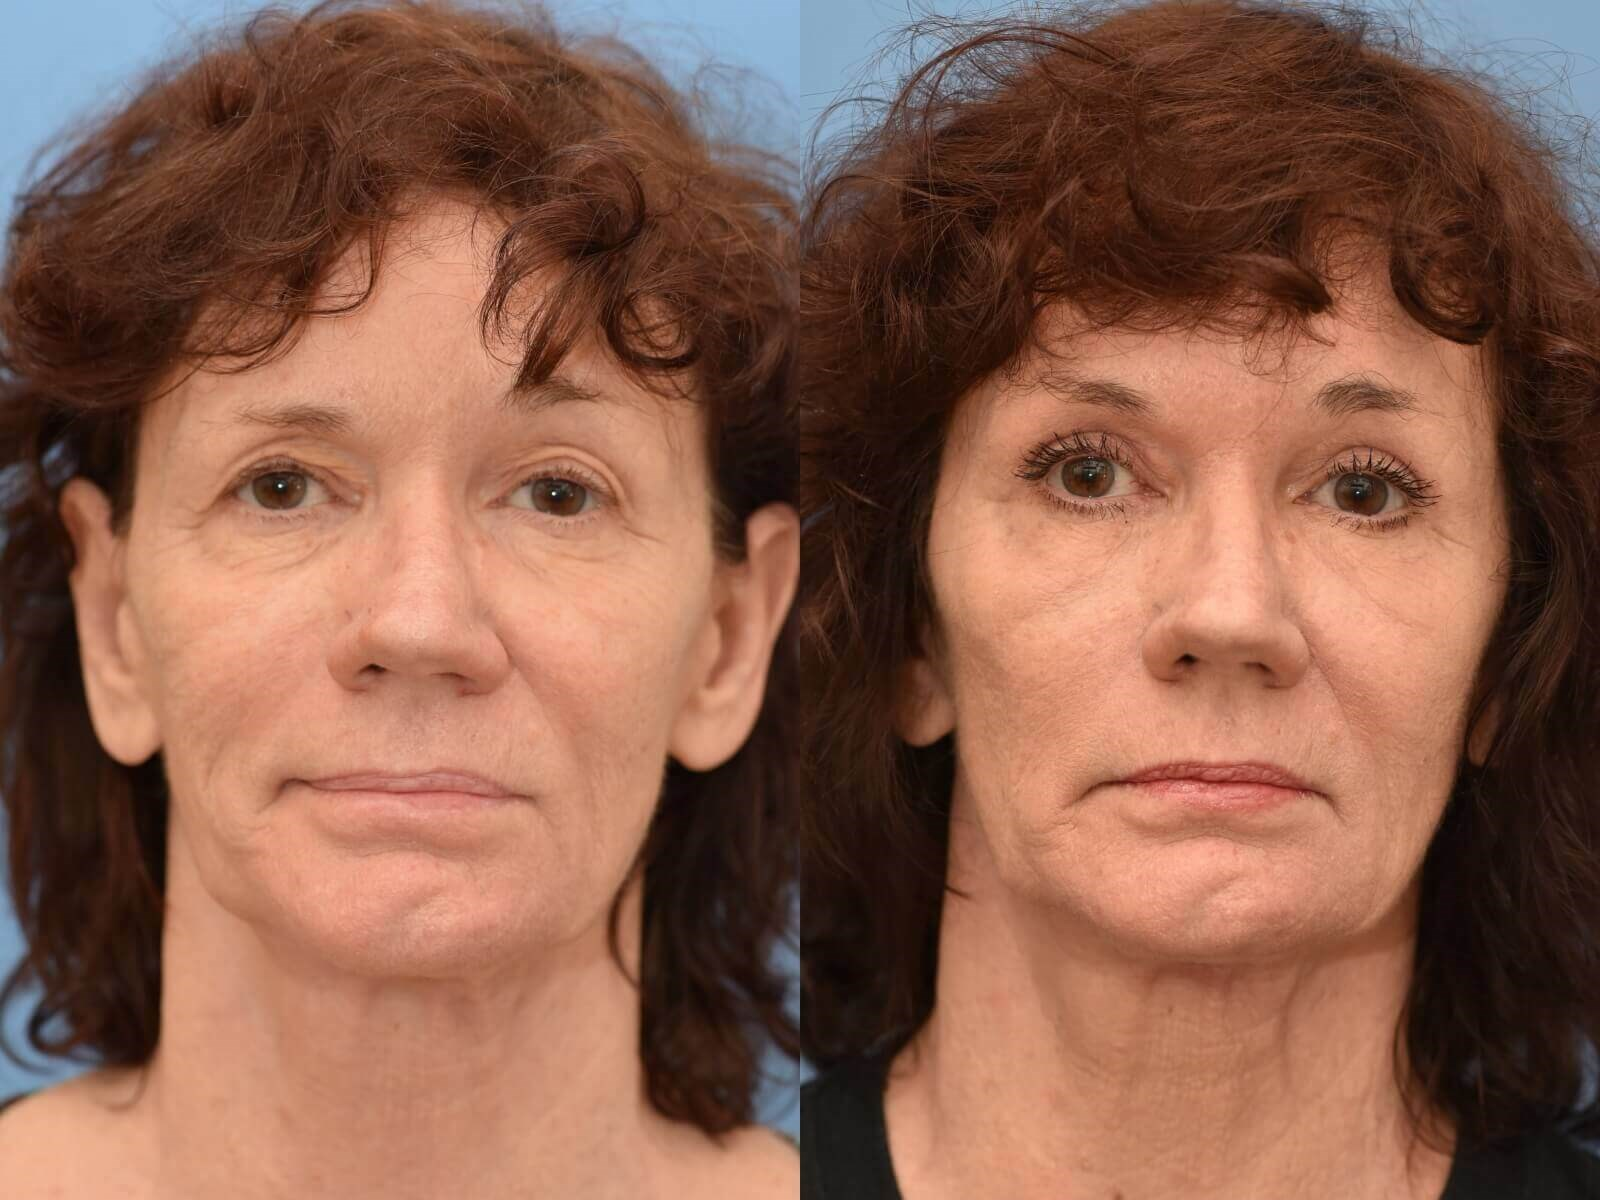 Browlift and Fat Grafting Before and After